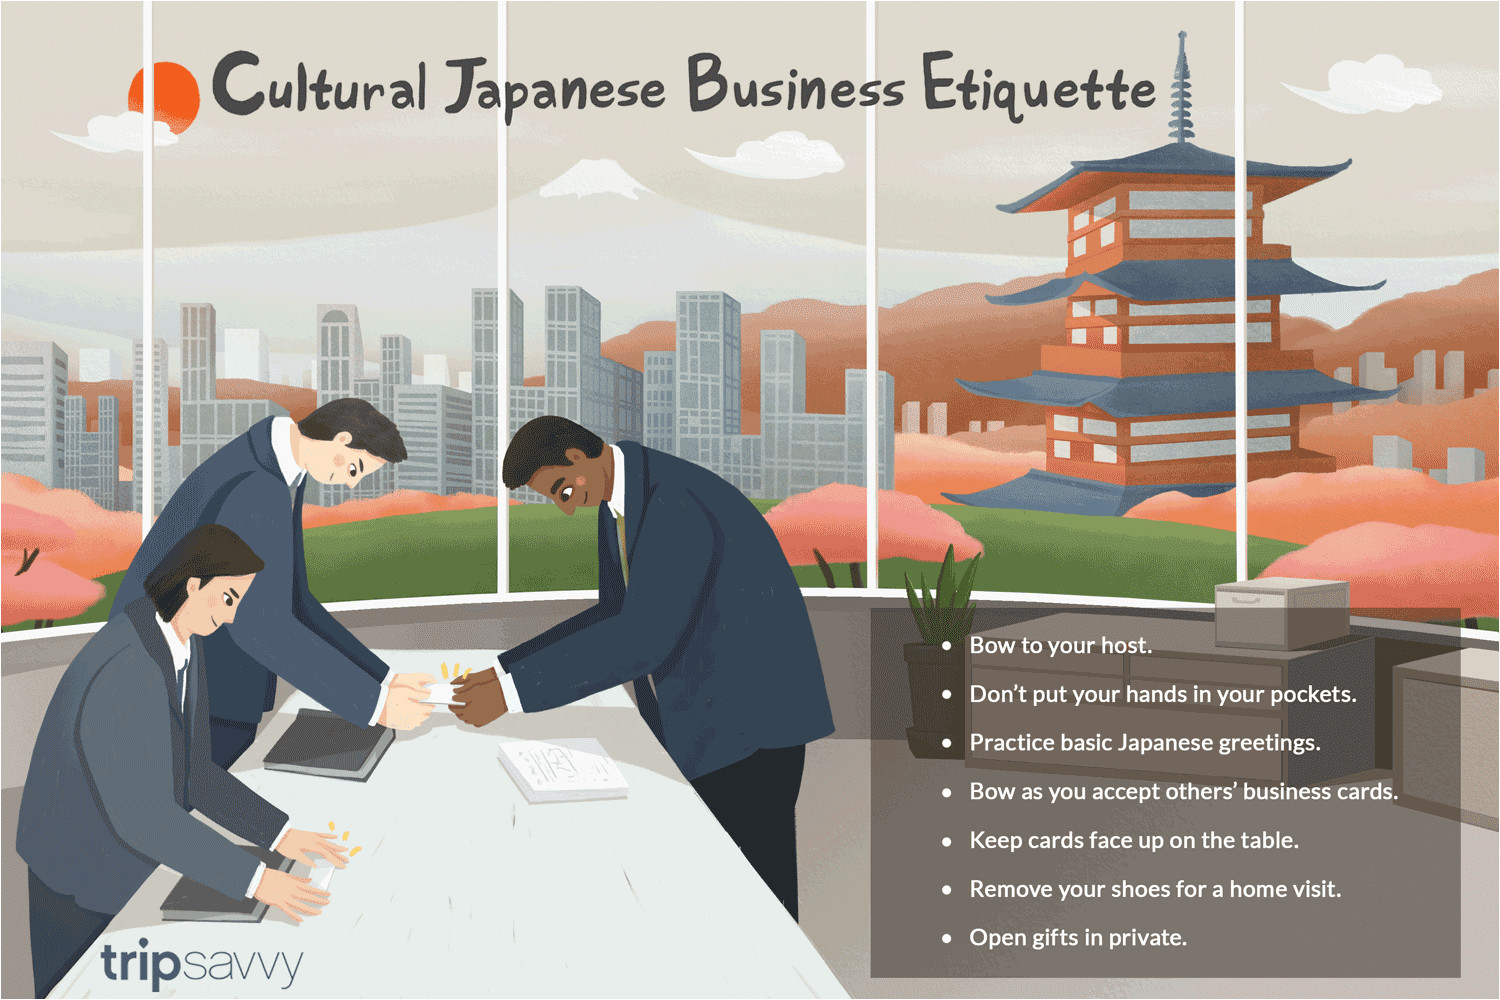 japanese business etiquette 1458300 5fd785bade93456c82dc8b5e27947add png